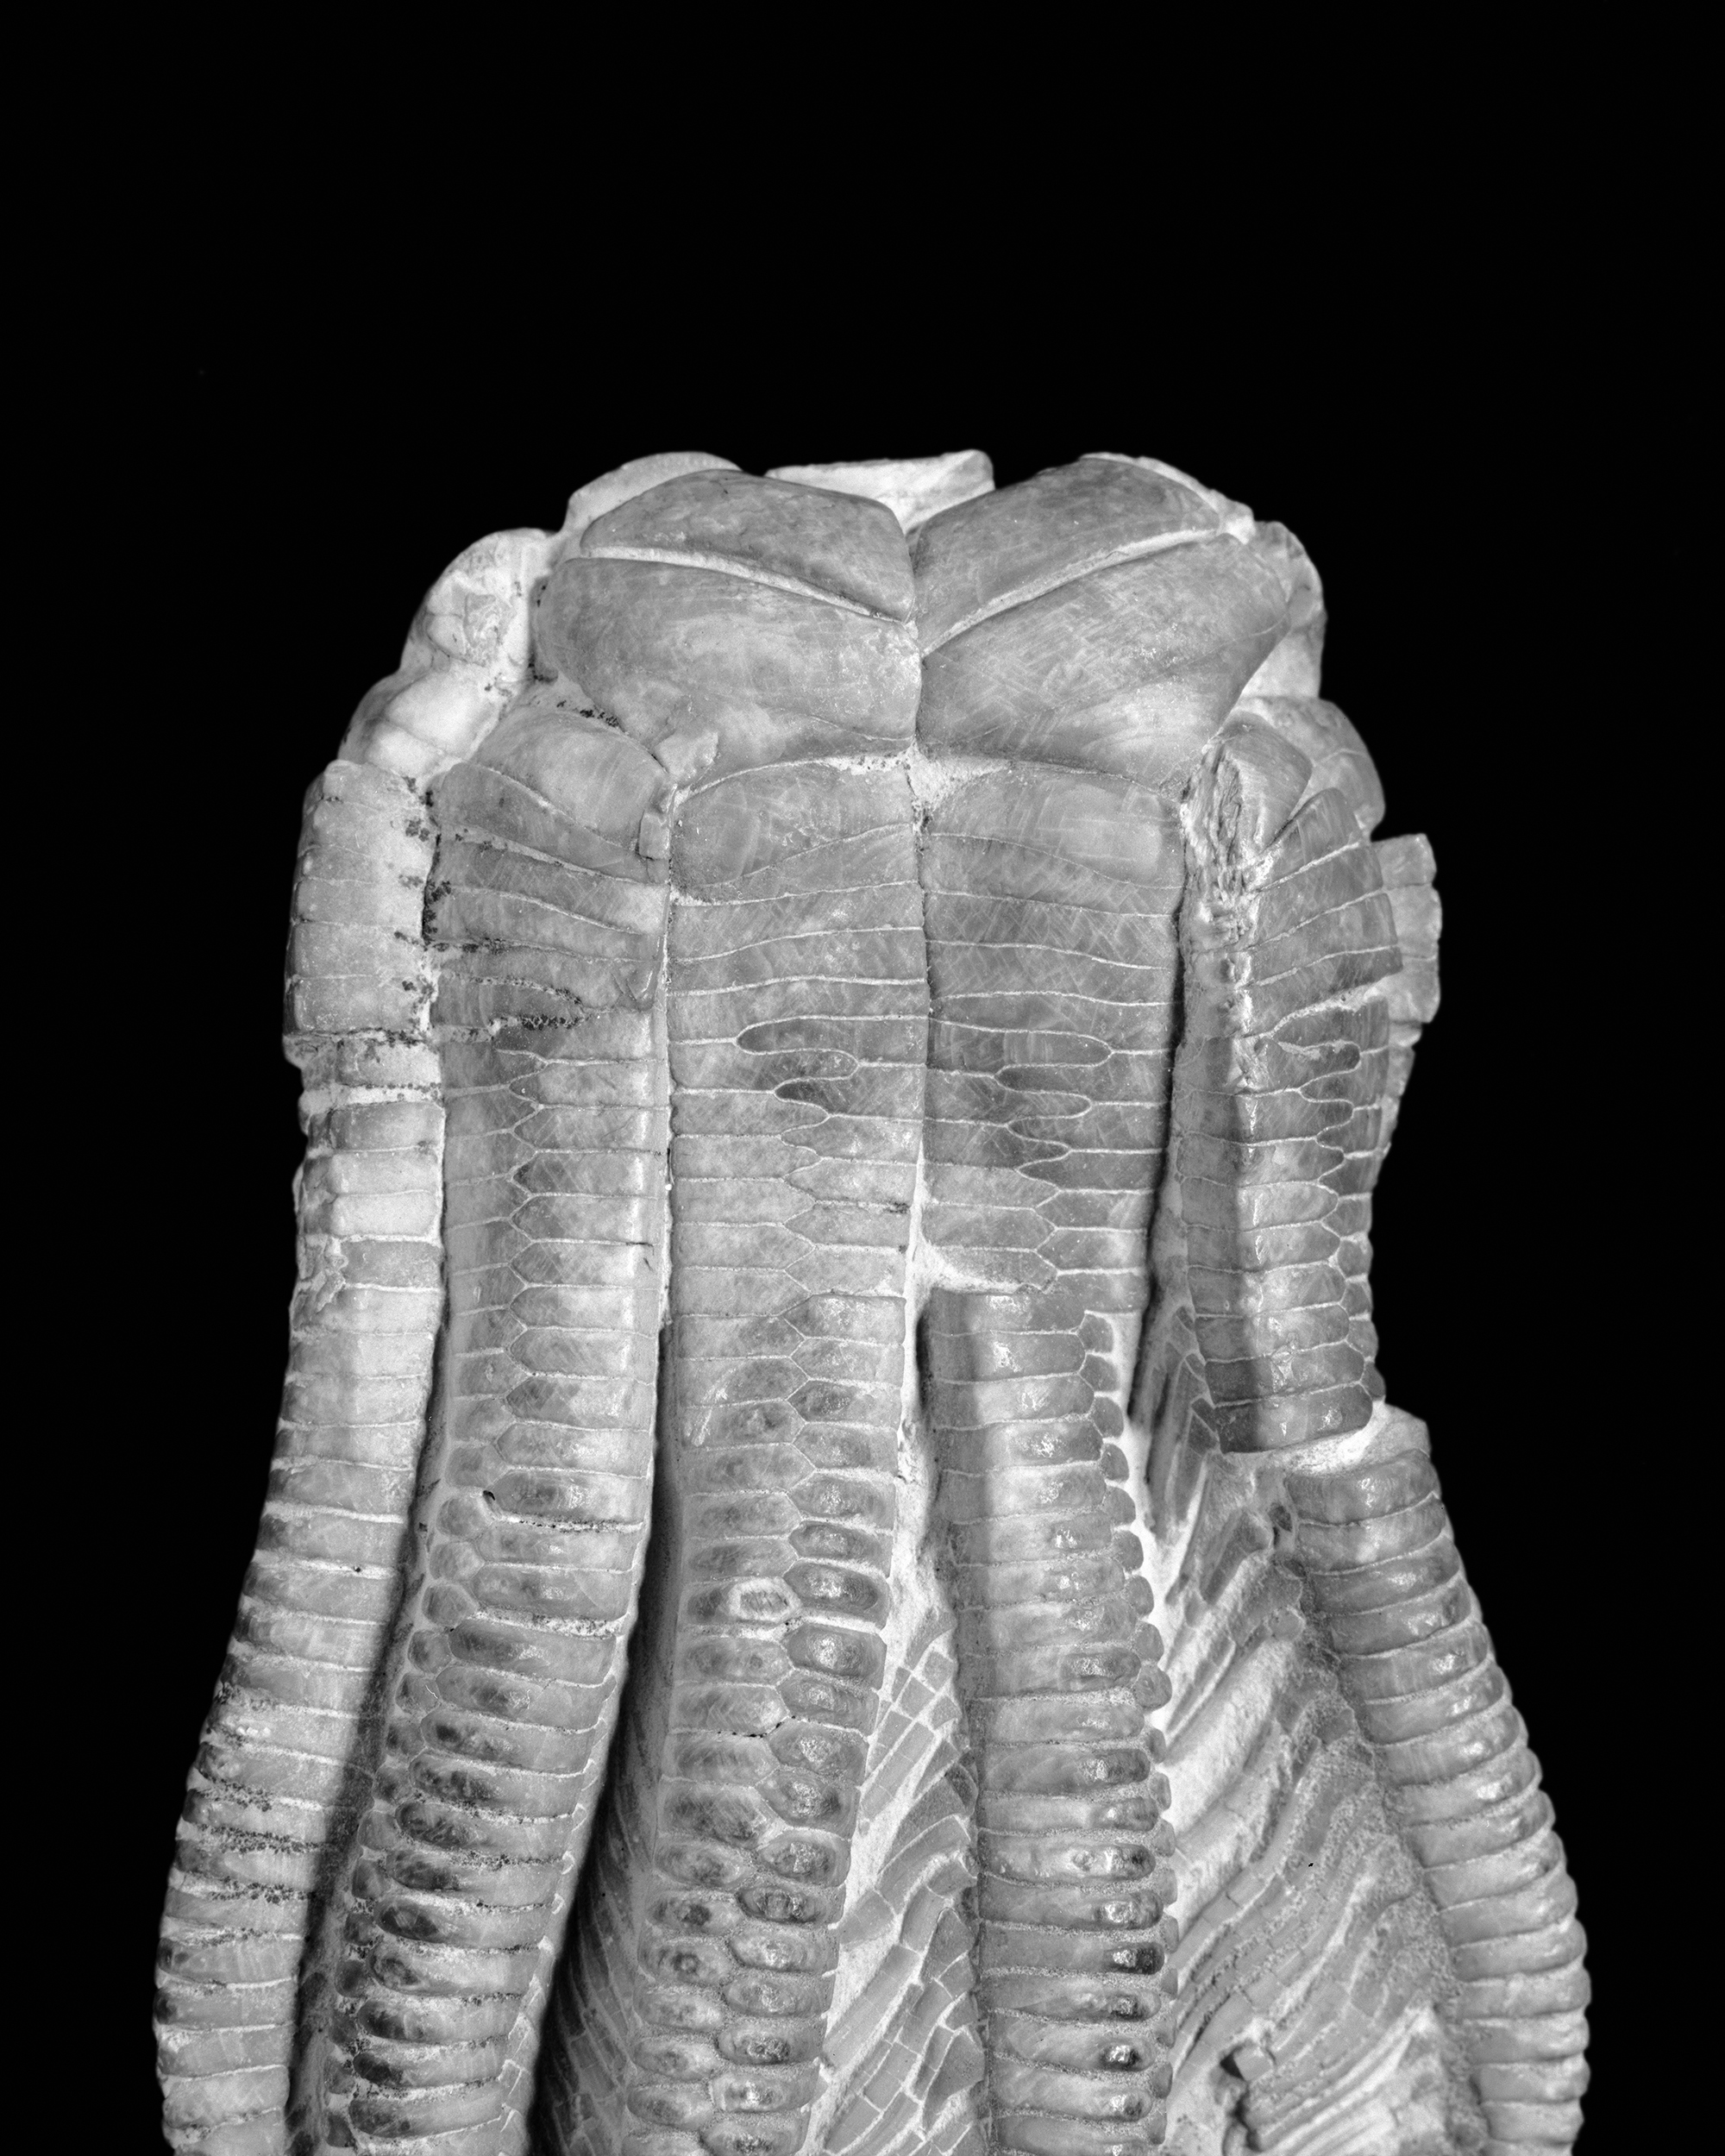 Encrinus liliforms